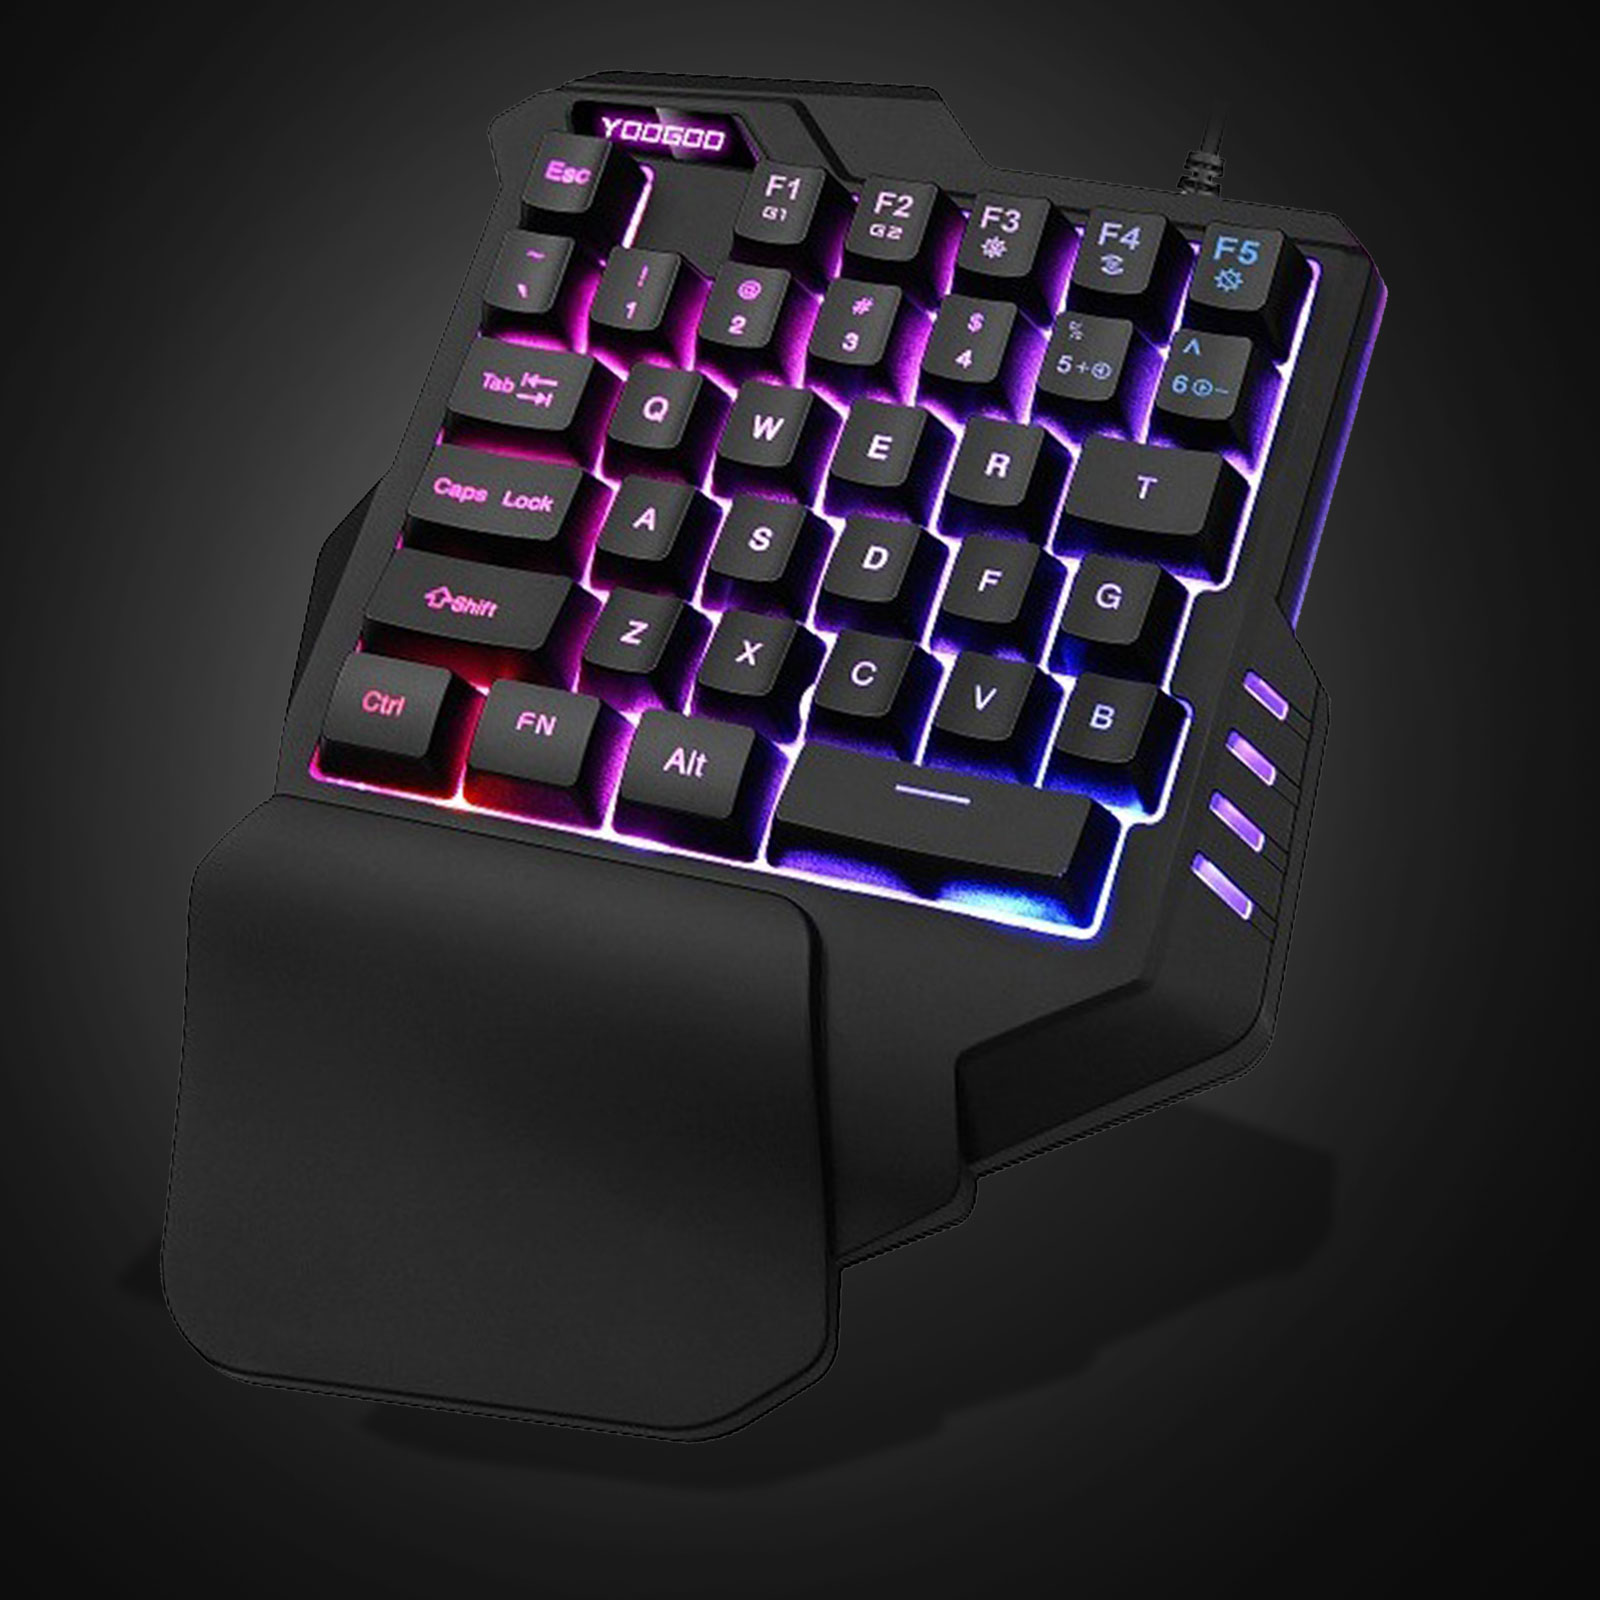 One Handed Keyboard, TSV One-Handed Mechanical Gaming Keyboard RGB LED Backlit Portable Mini Gaming Keypad for LOL/PUBG/WOW/Dota/OW/FPS Game